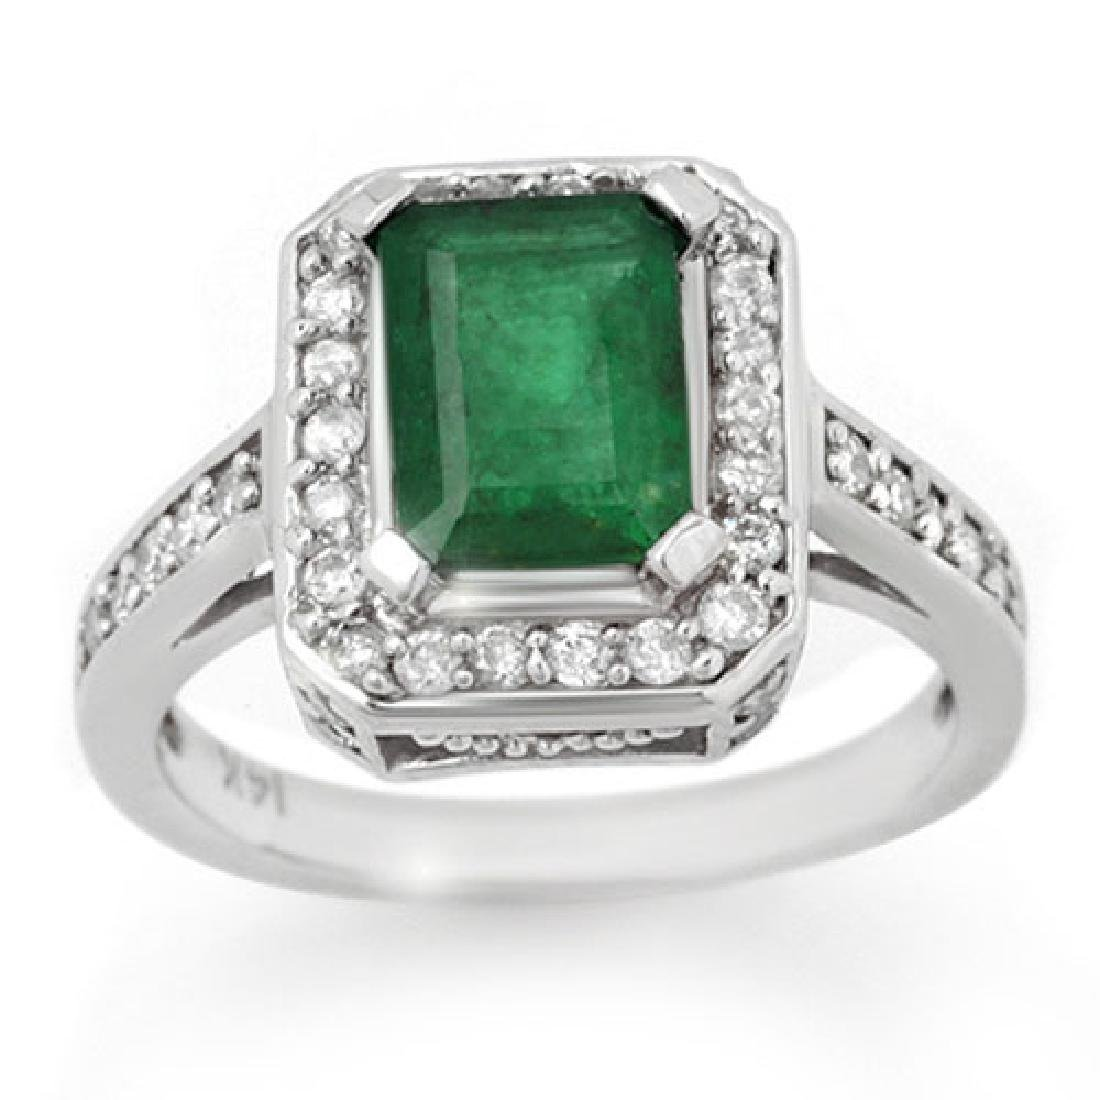 2.0 CTW Emerald & Diamond Ring 18K White Gold